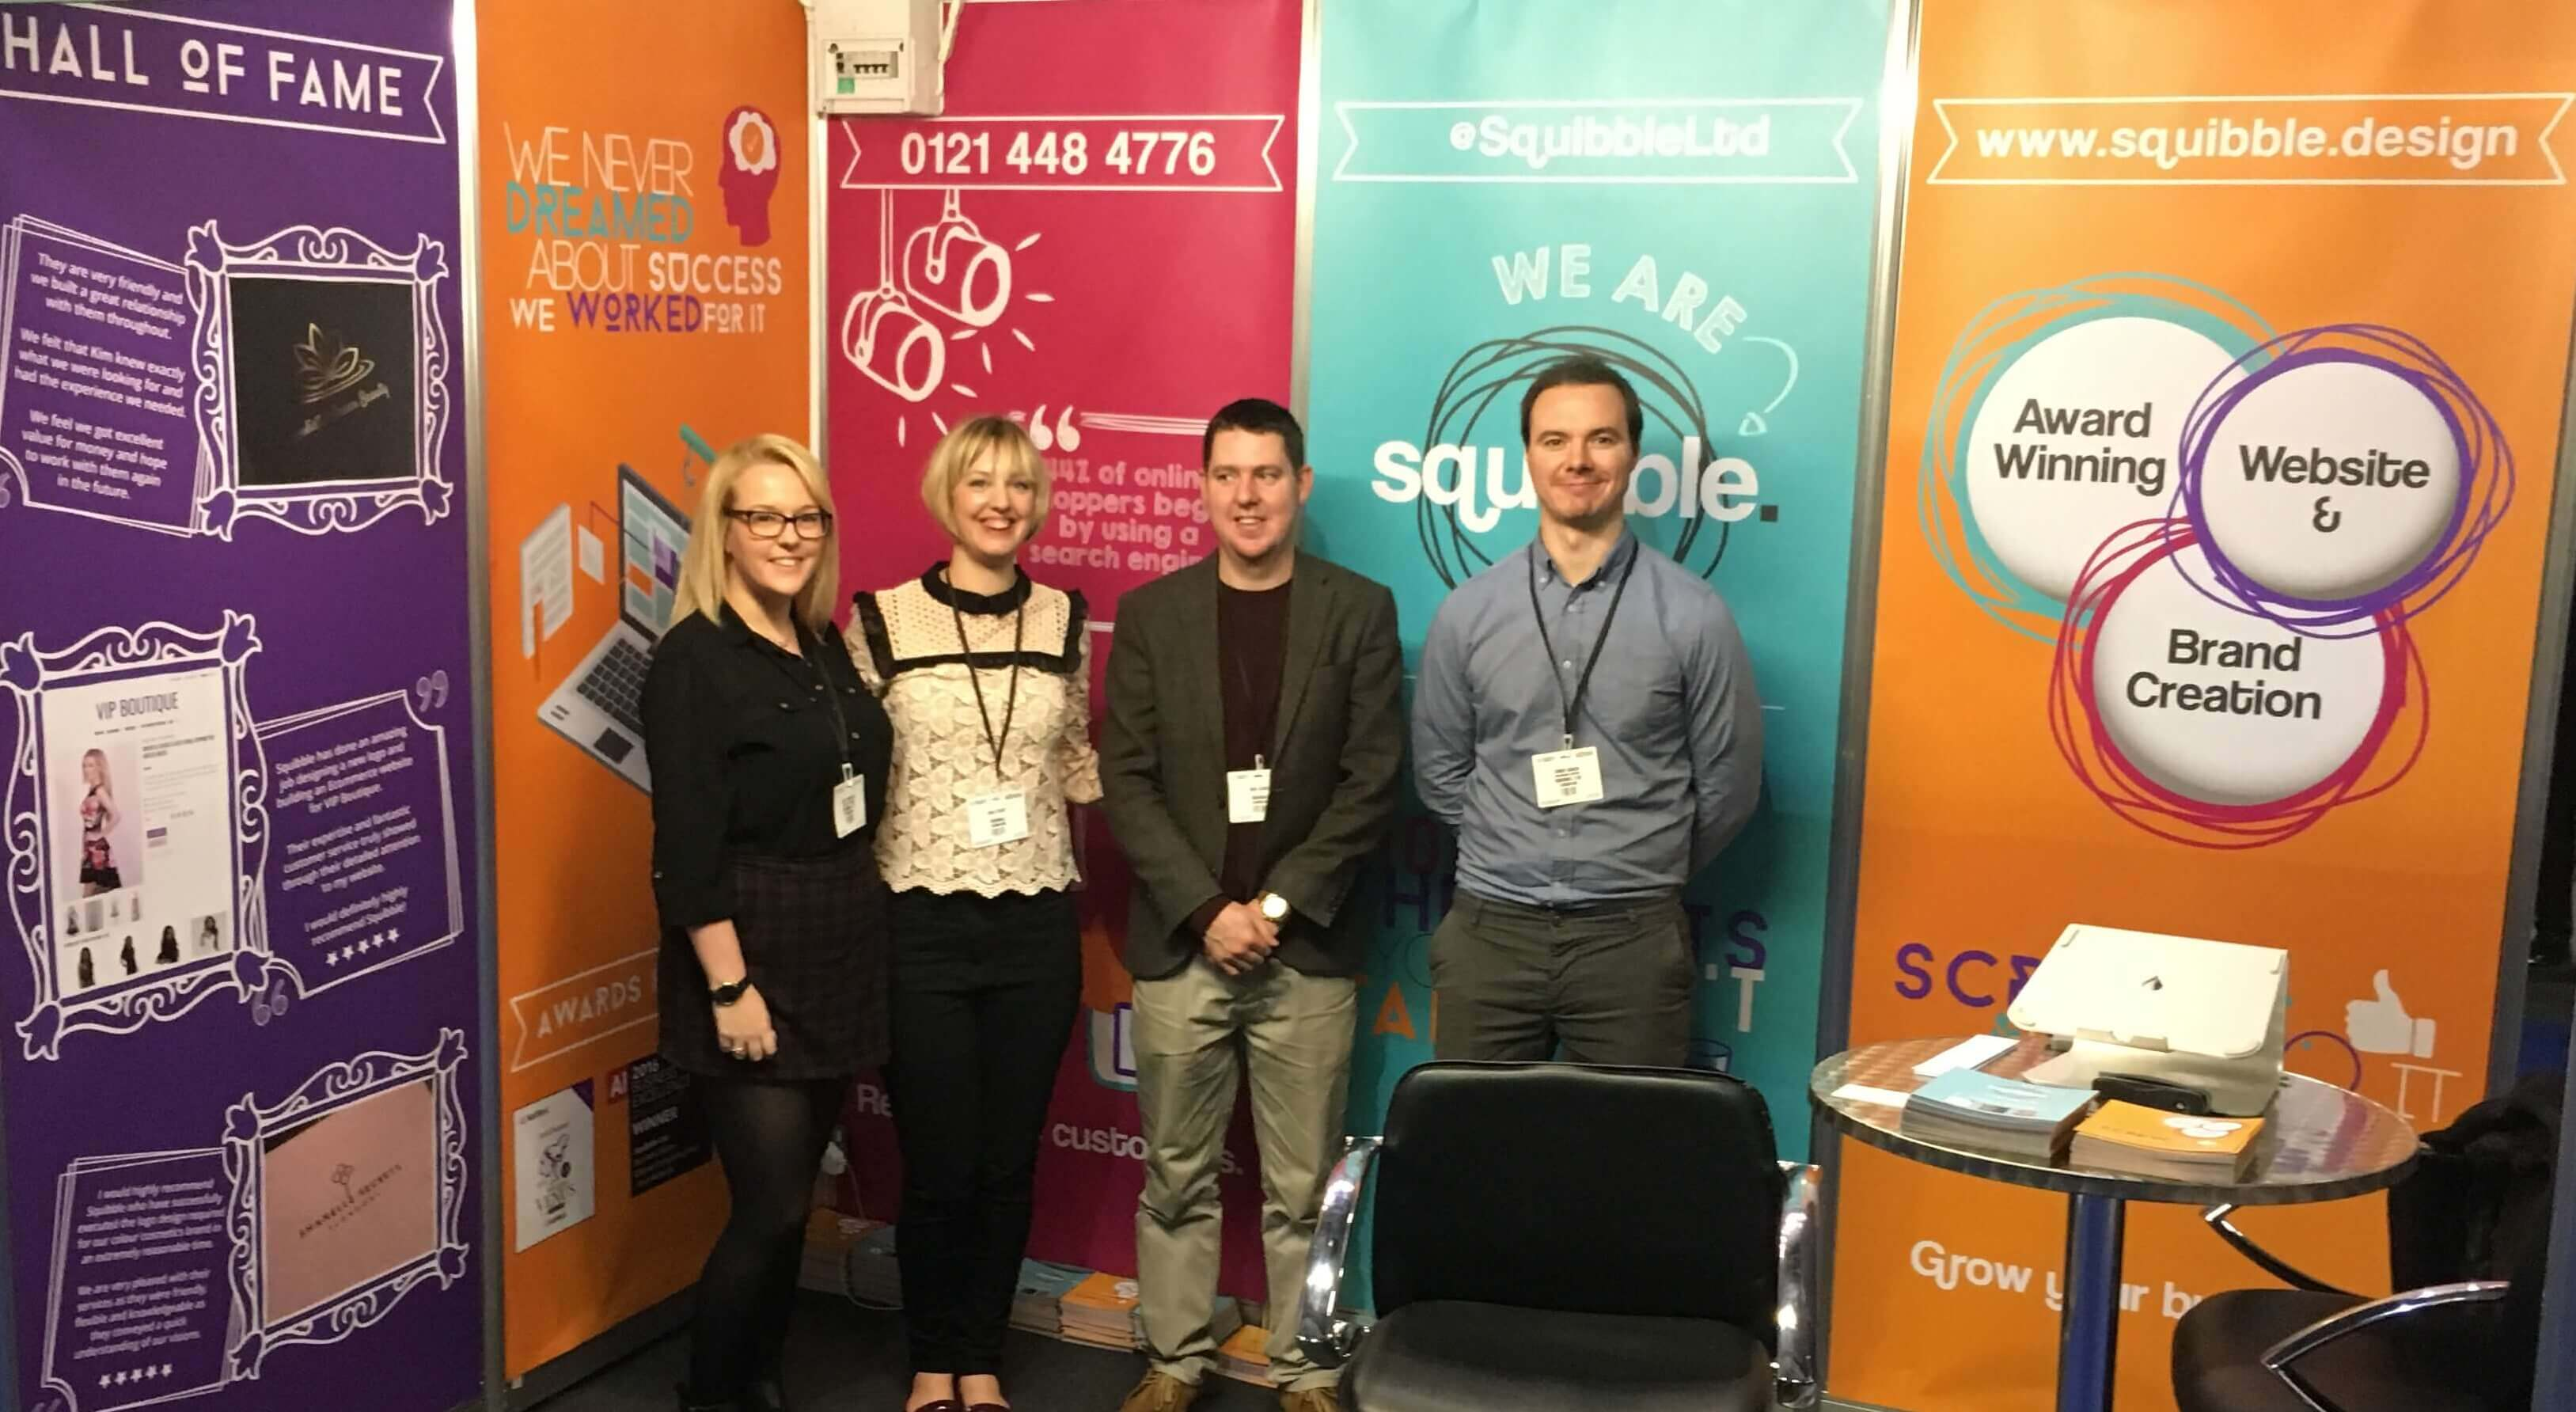 The squibble team taking part in an exhibition